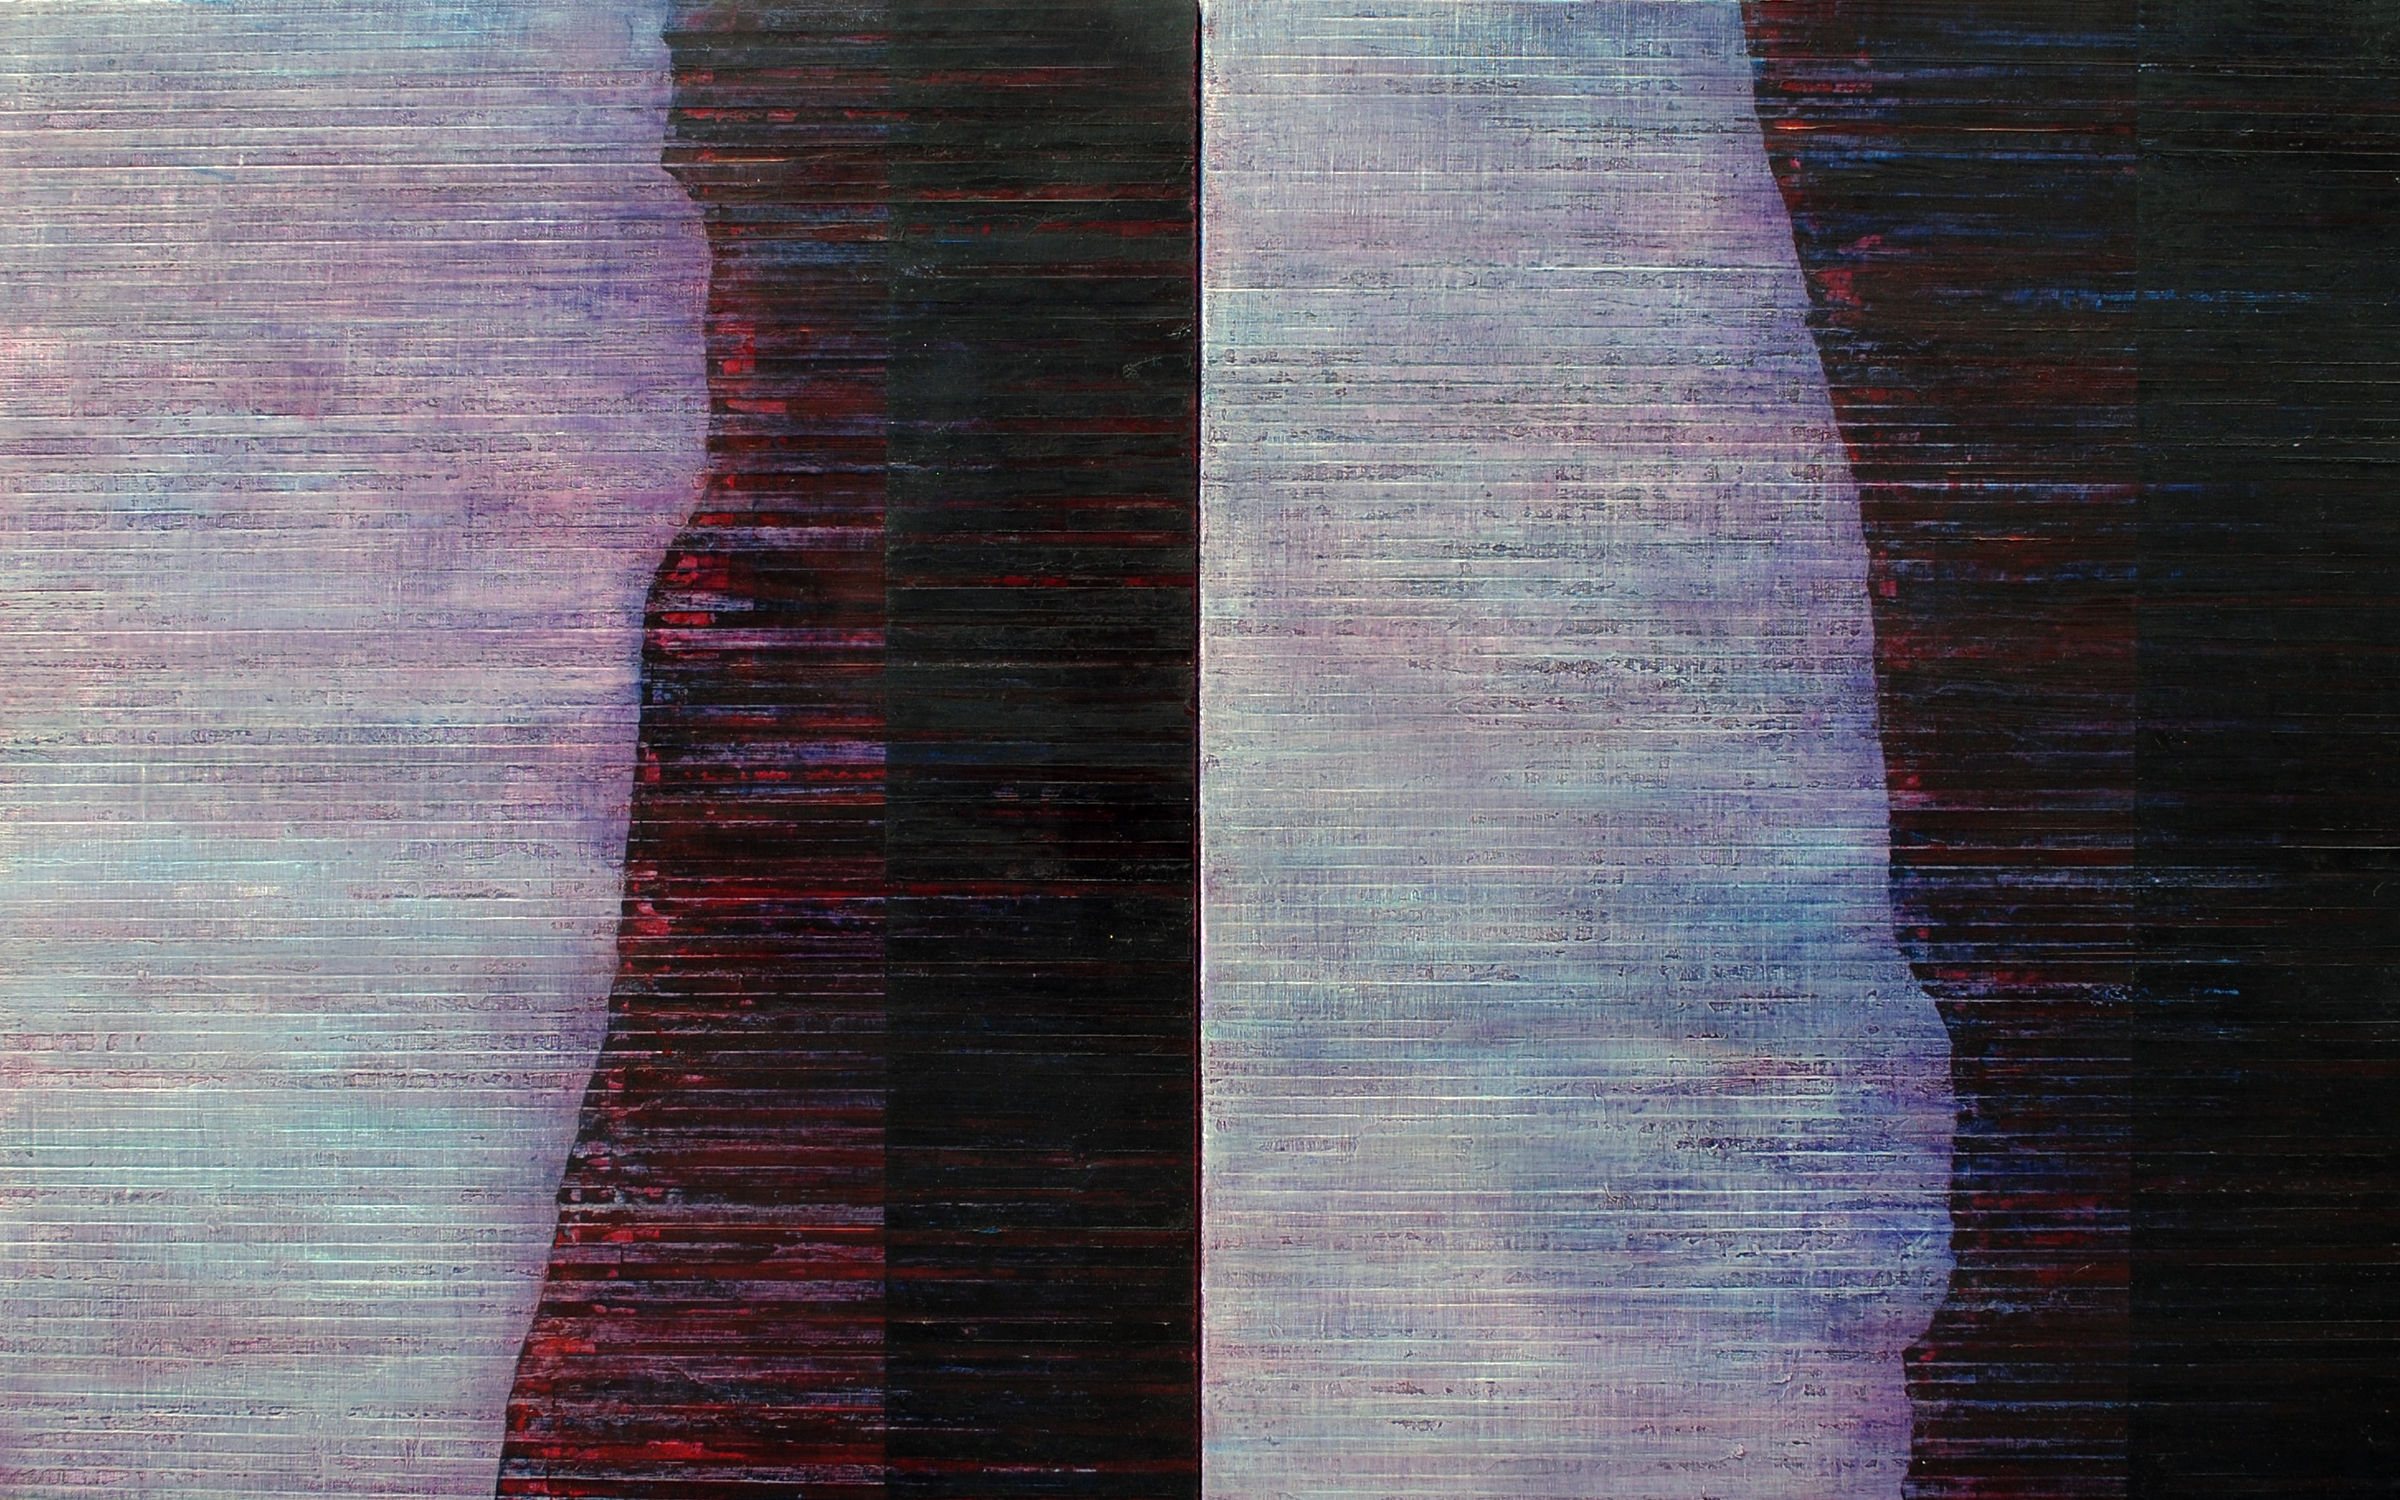 Linea Terminale: 7.12, 2012, Oil on linen over panels, 20 x 36 inches.